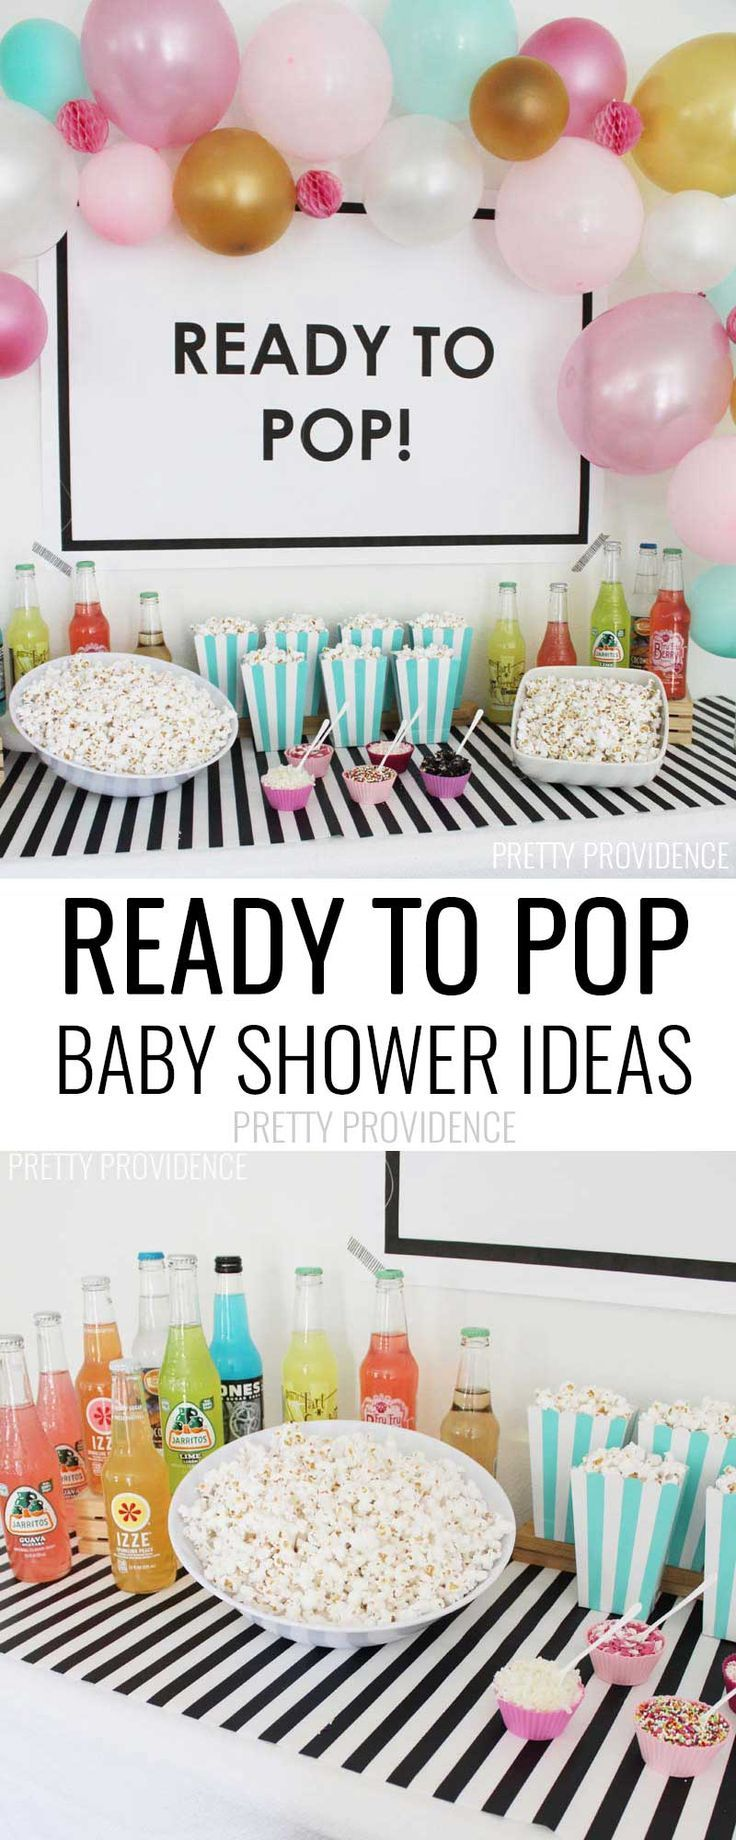 Hosting a baby shower and need some food ideas look no further since - Ready To Pop Baby Shower